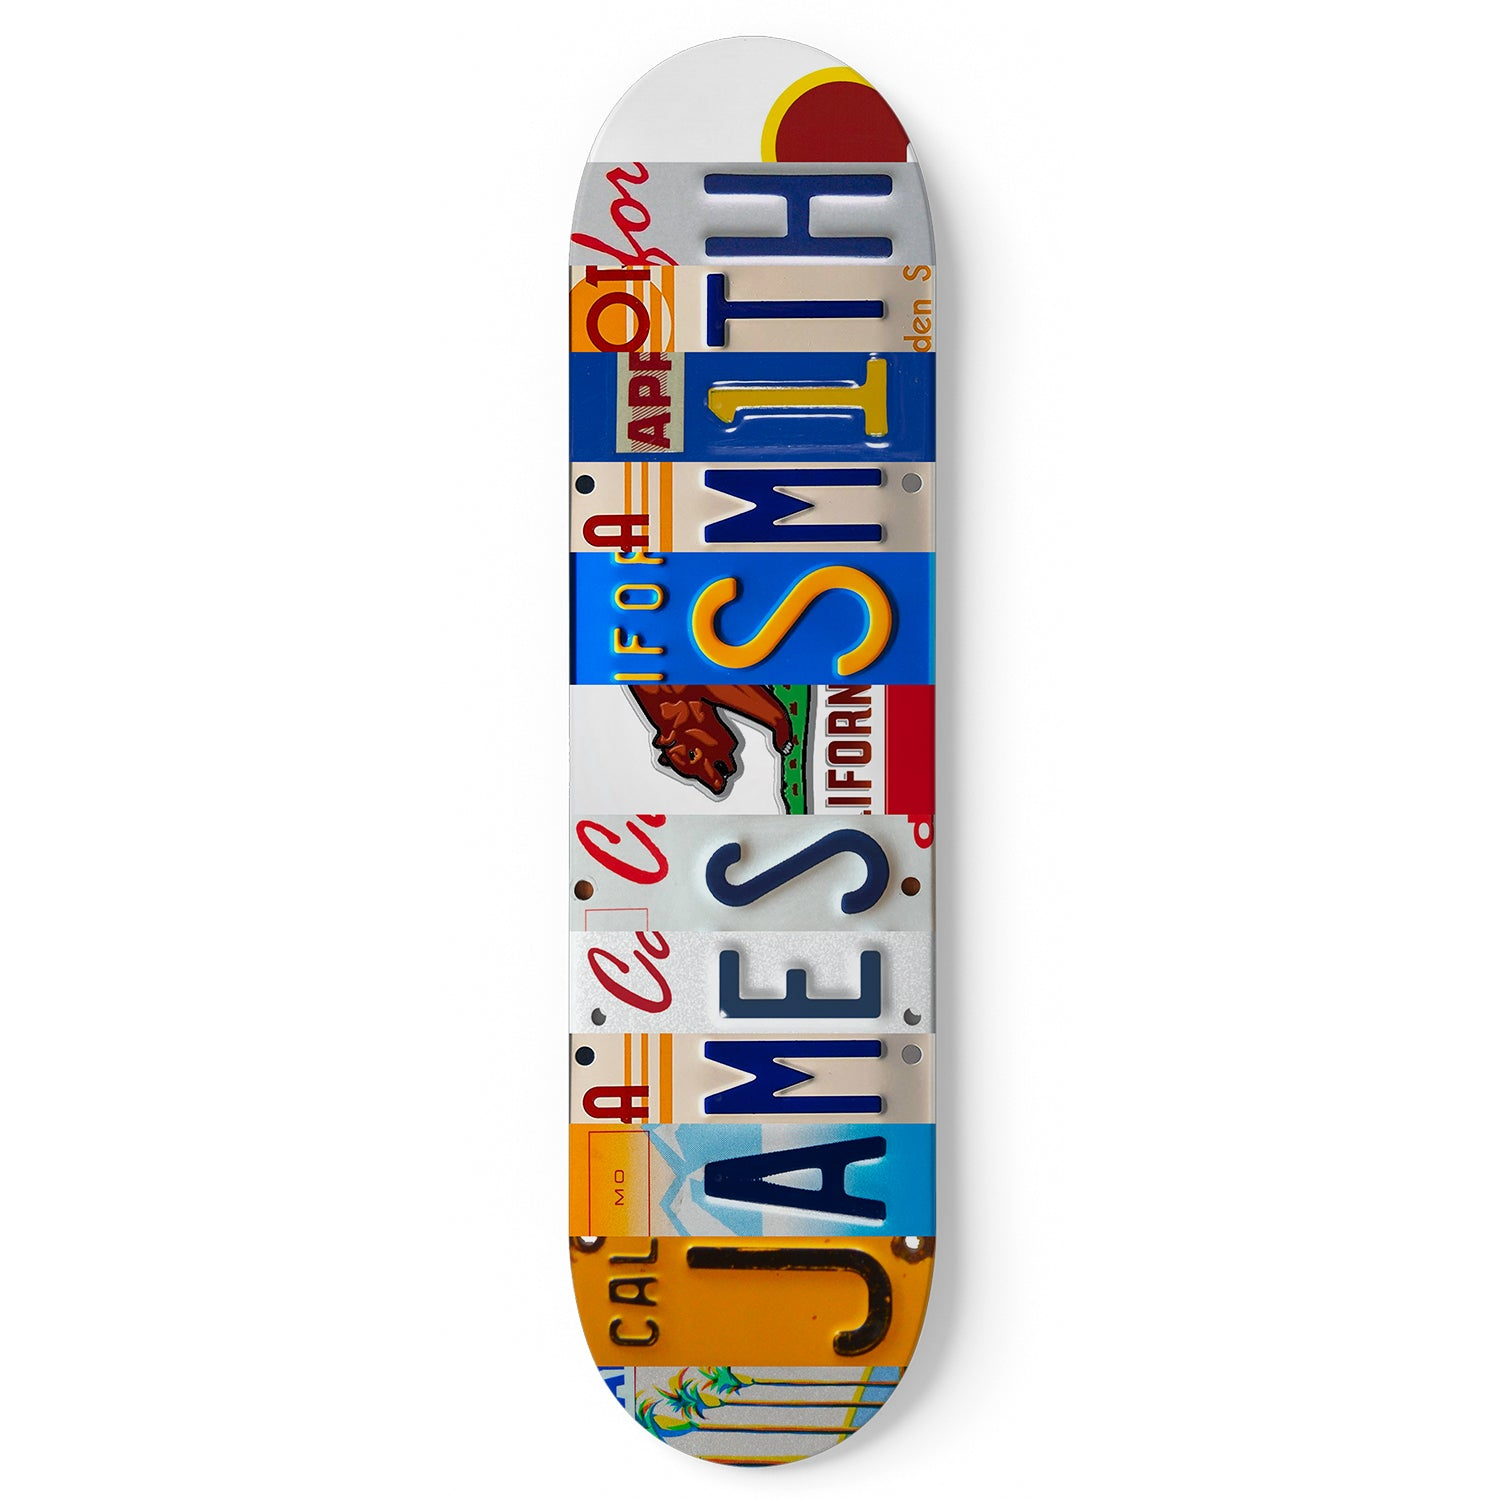 Personalized Skateboard California License Plate Design